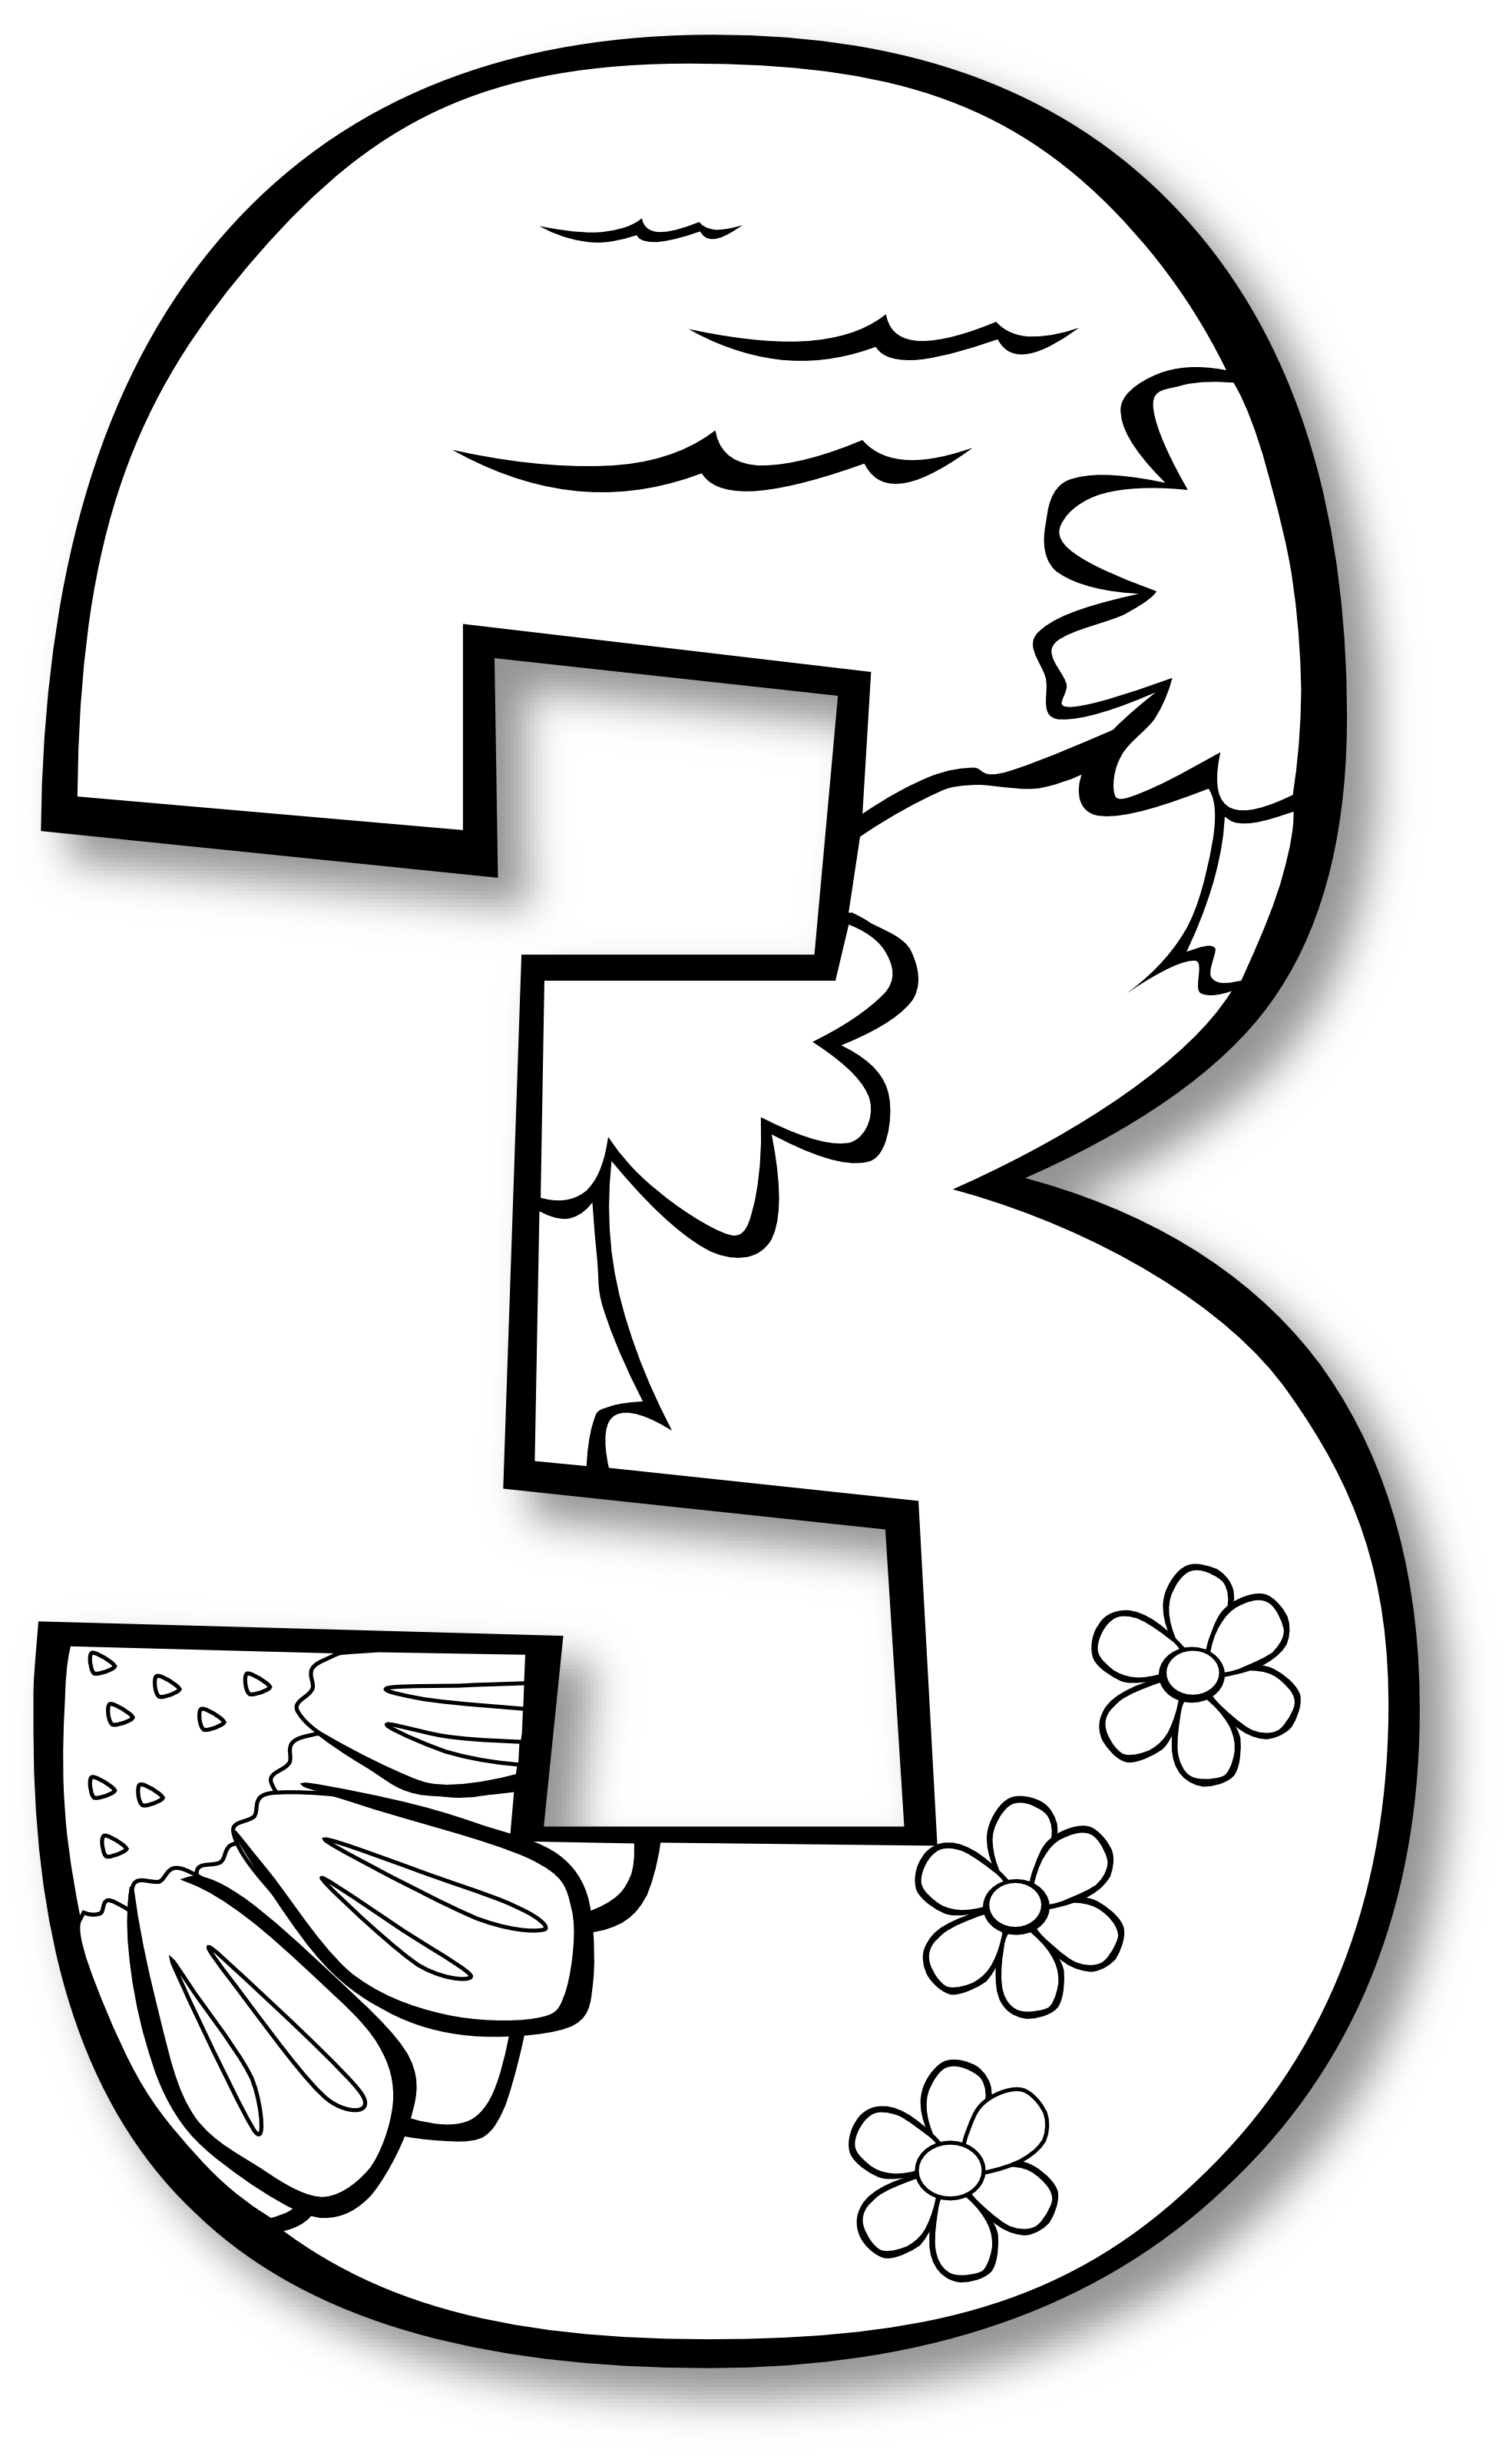 Number three at getdrawings. Numbers drawing cartoon image freeuse library